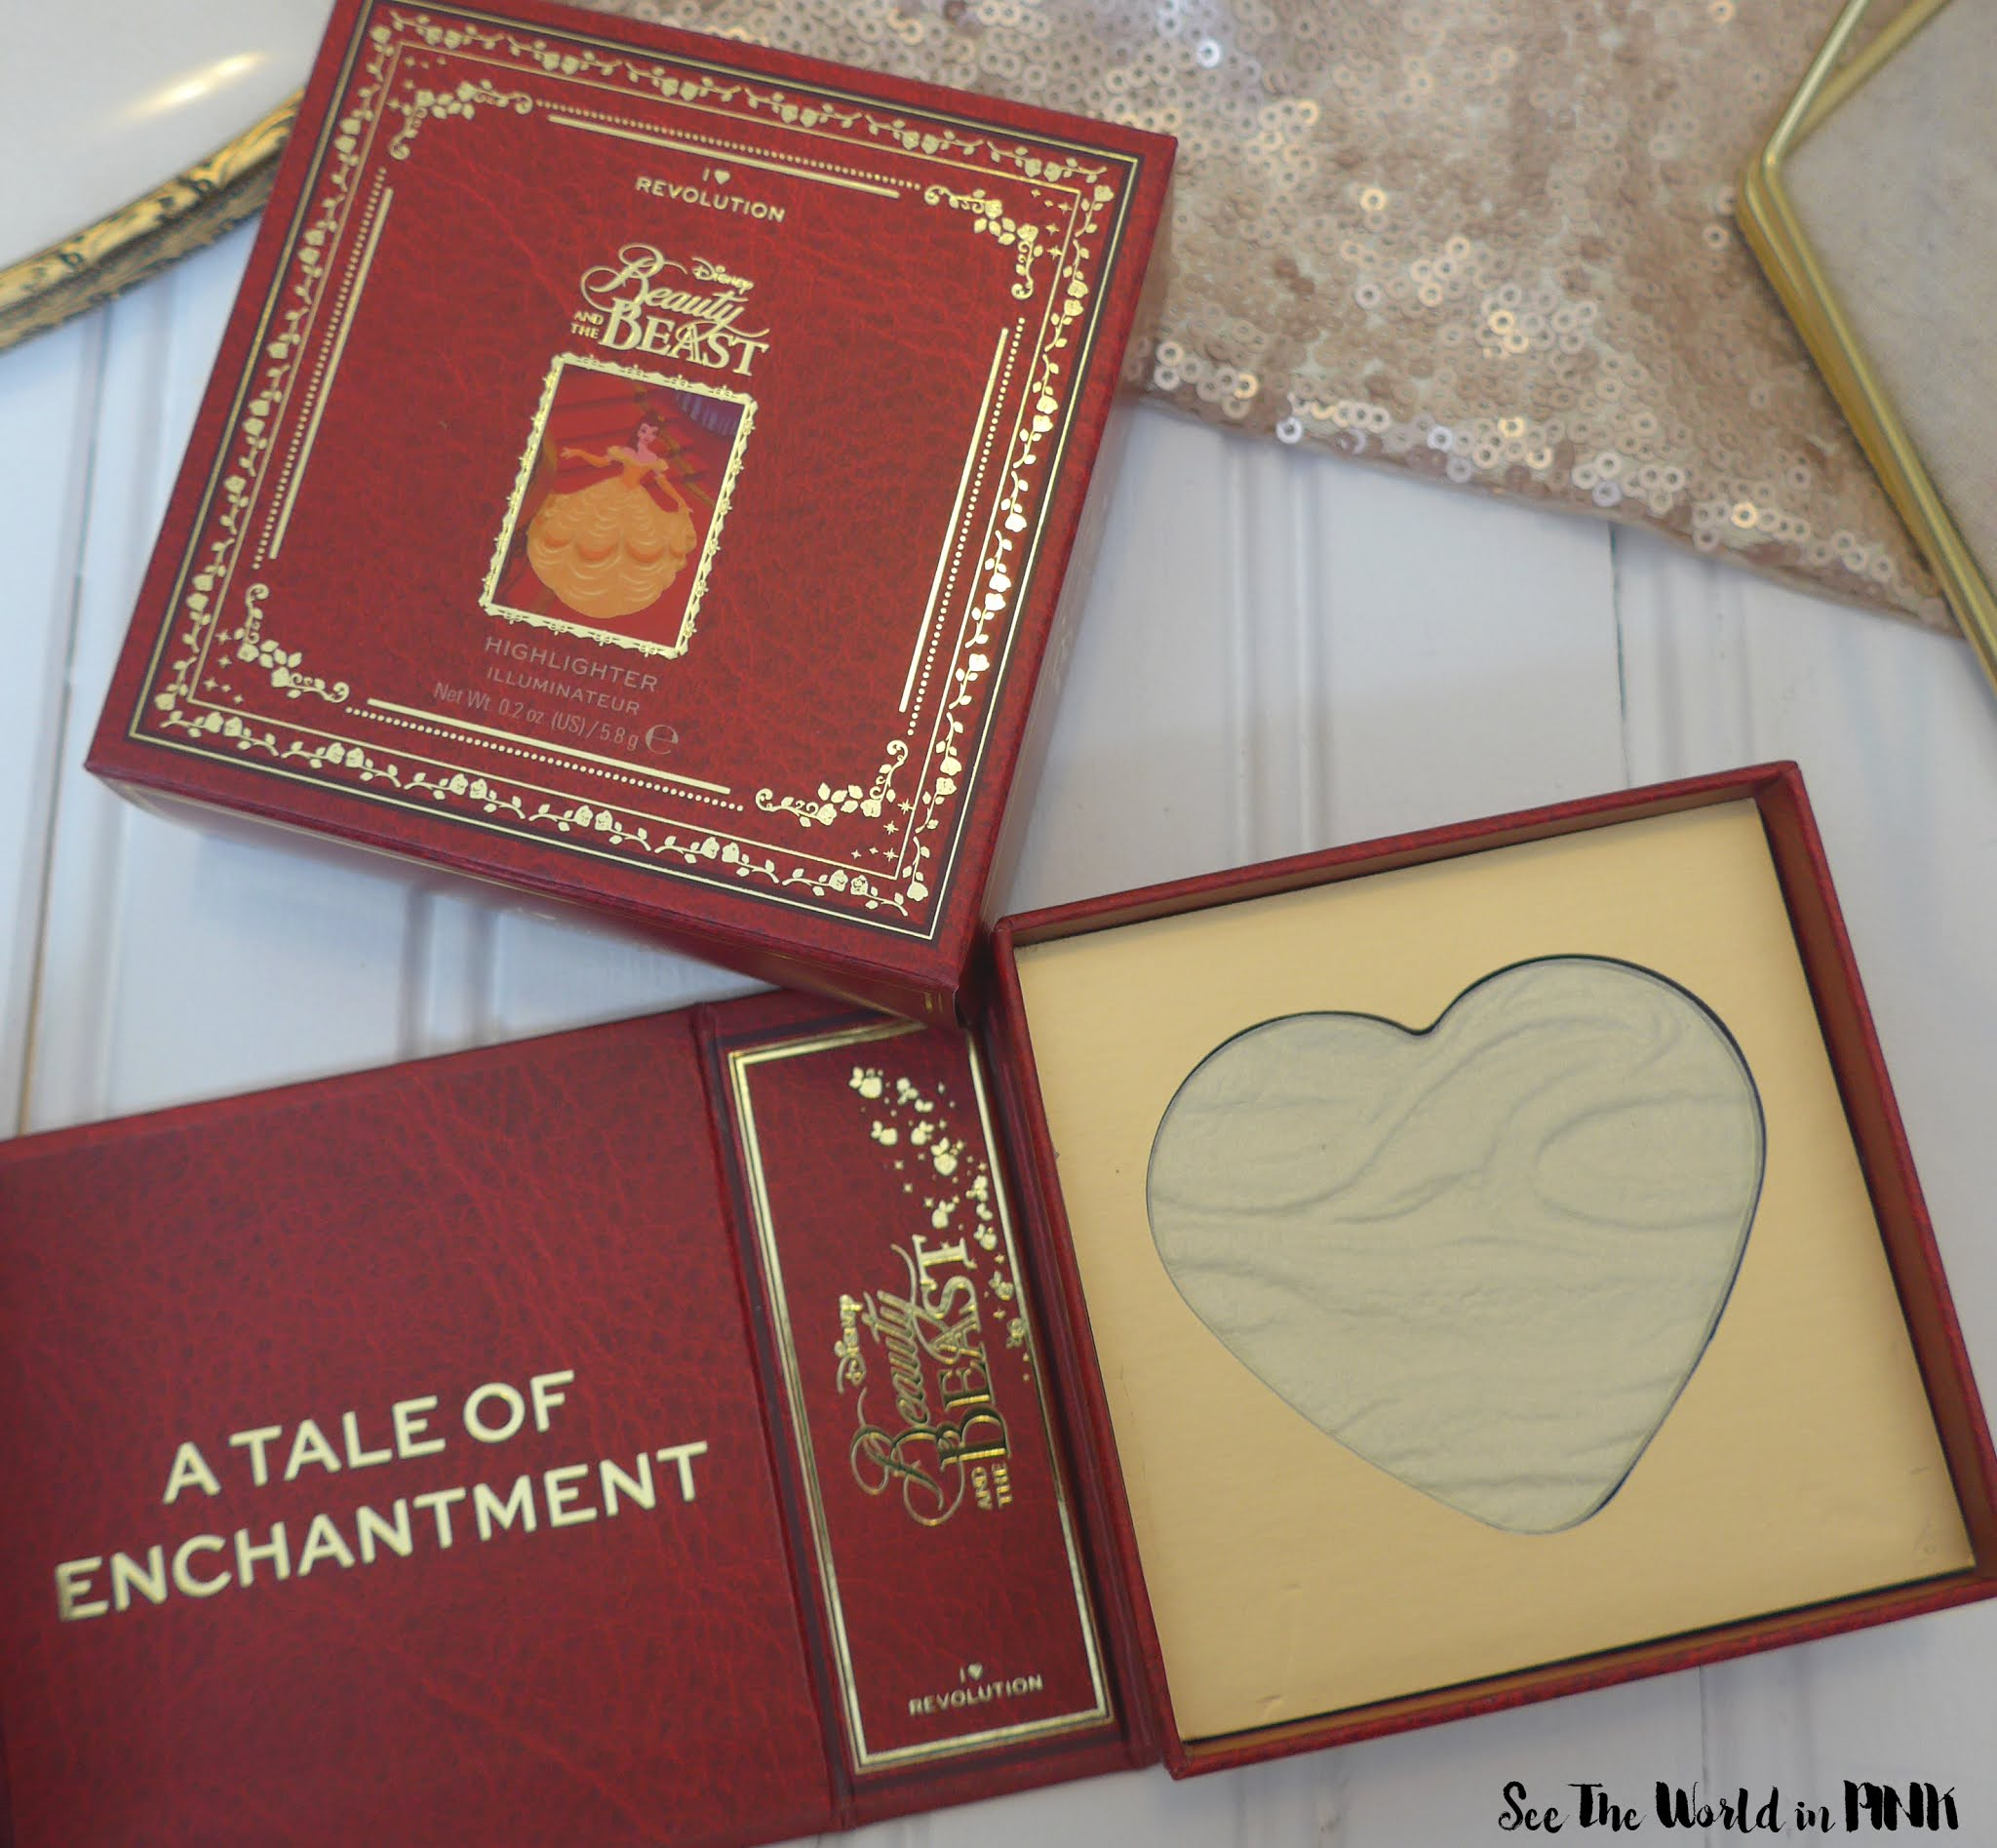 "I Tried The Makeup Revolution ""I Heart Revolution x Disney Fairytale Books Belle"" Products So You Don't Have To..."